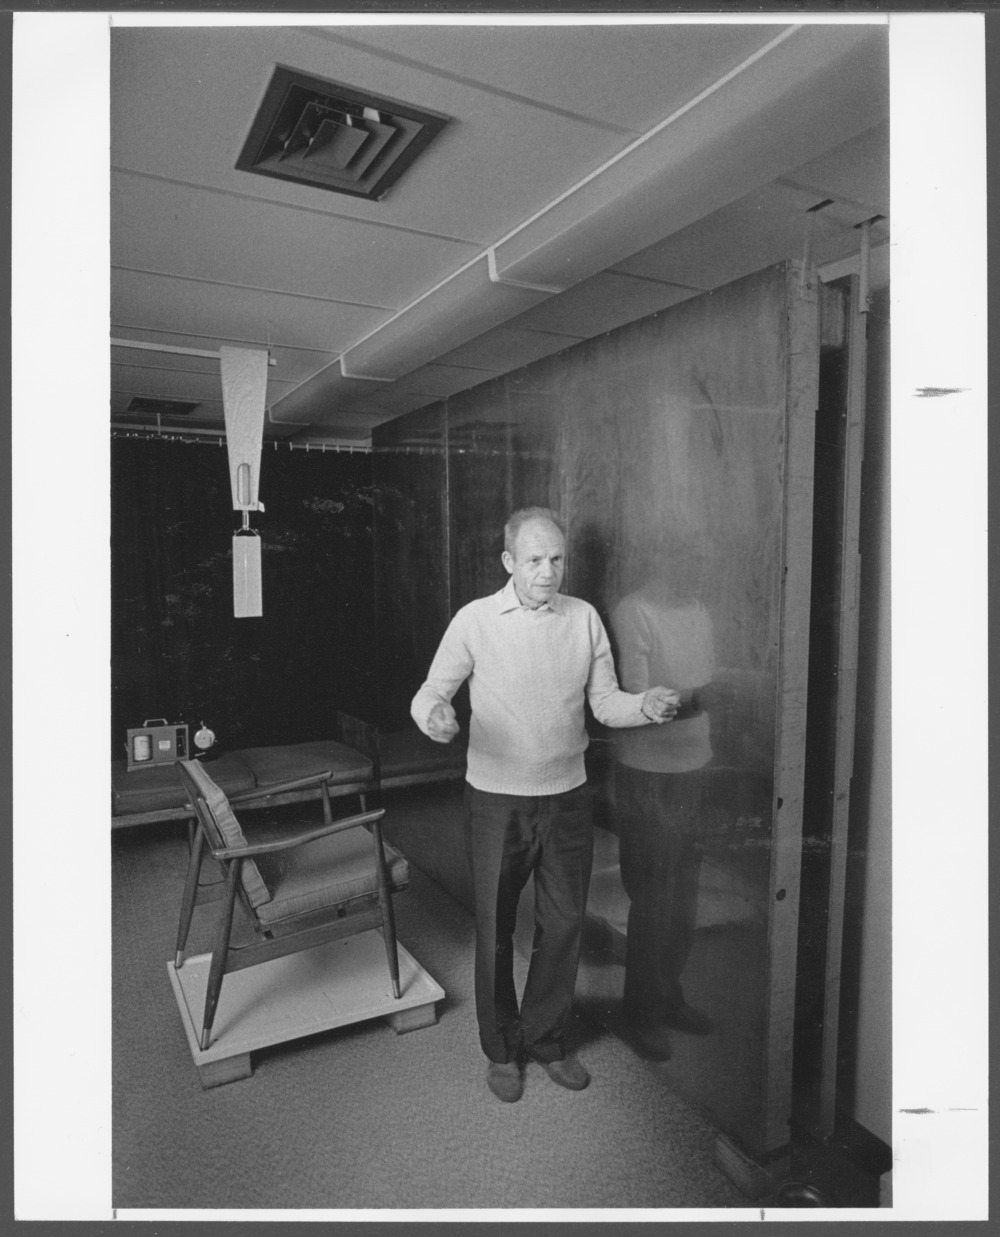 Elmer Green, PhD who established the psychophysiology laboratory at the Menninger Clinic